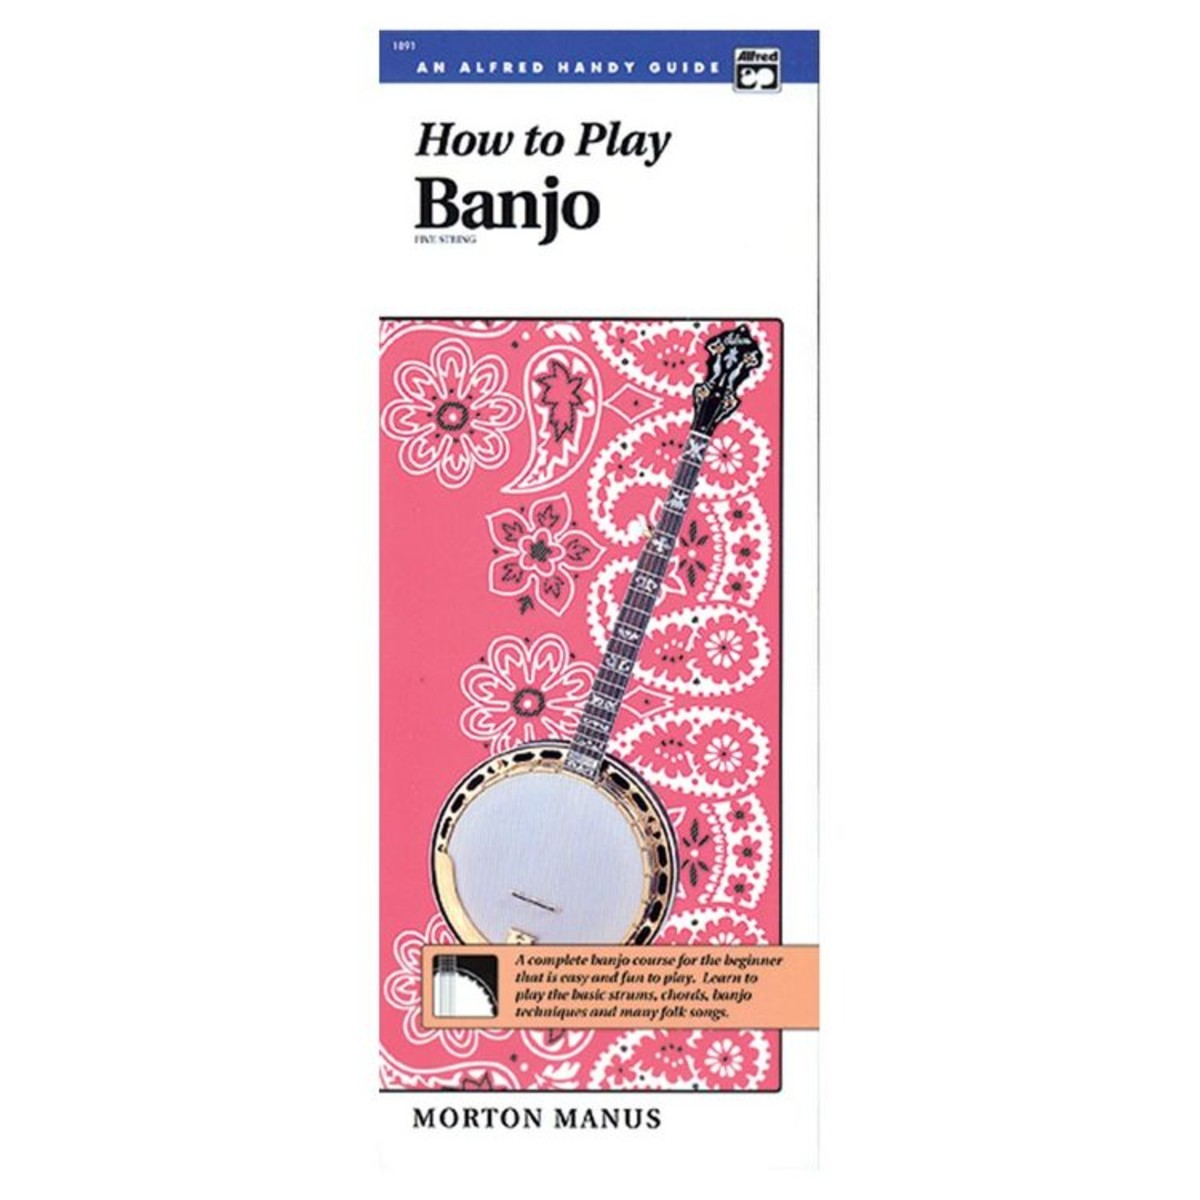 Image of How to Play Banjo Handy Guide